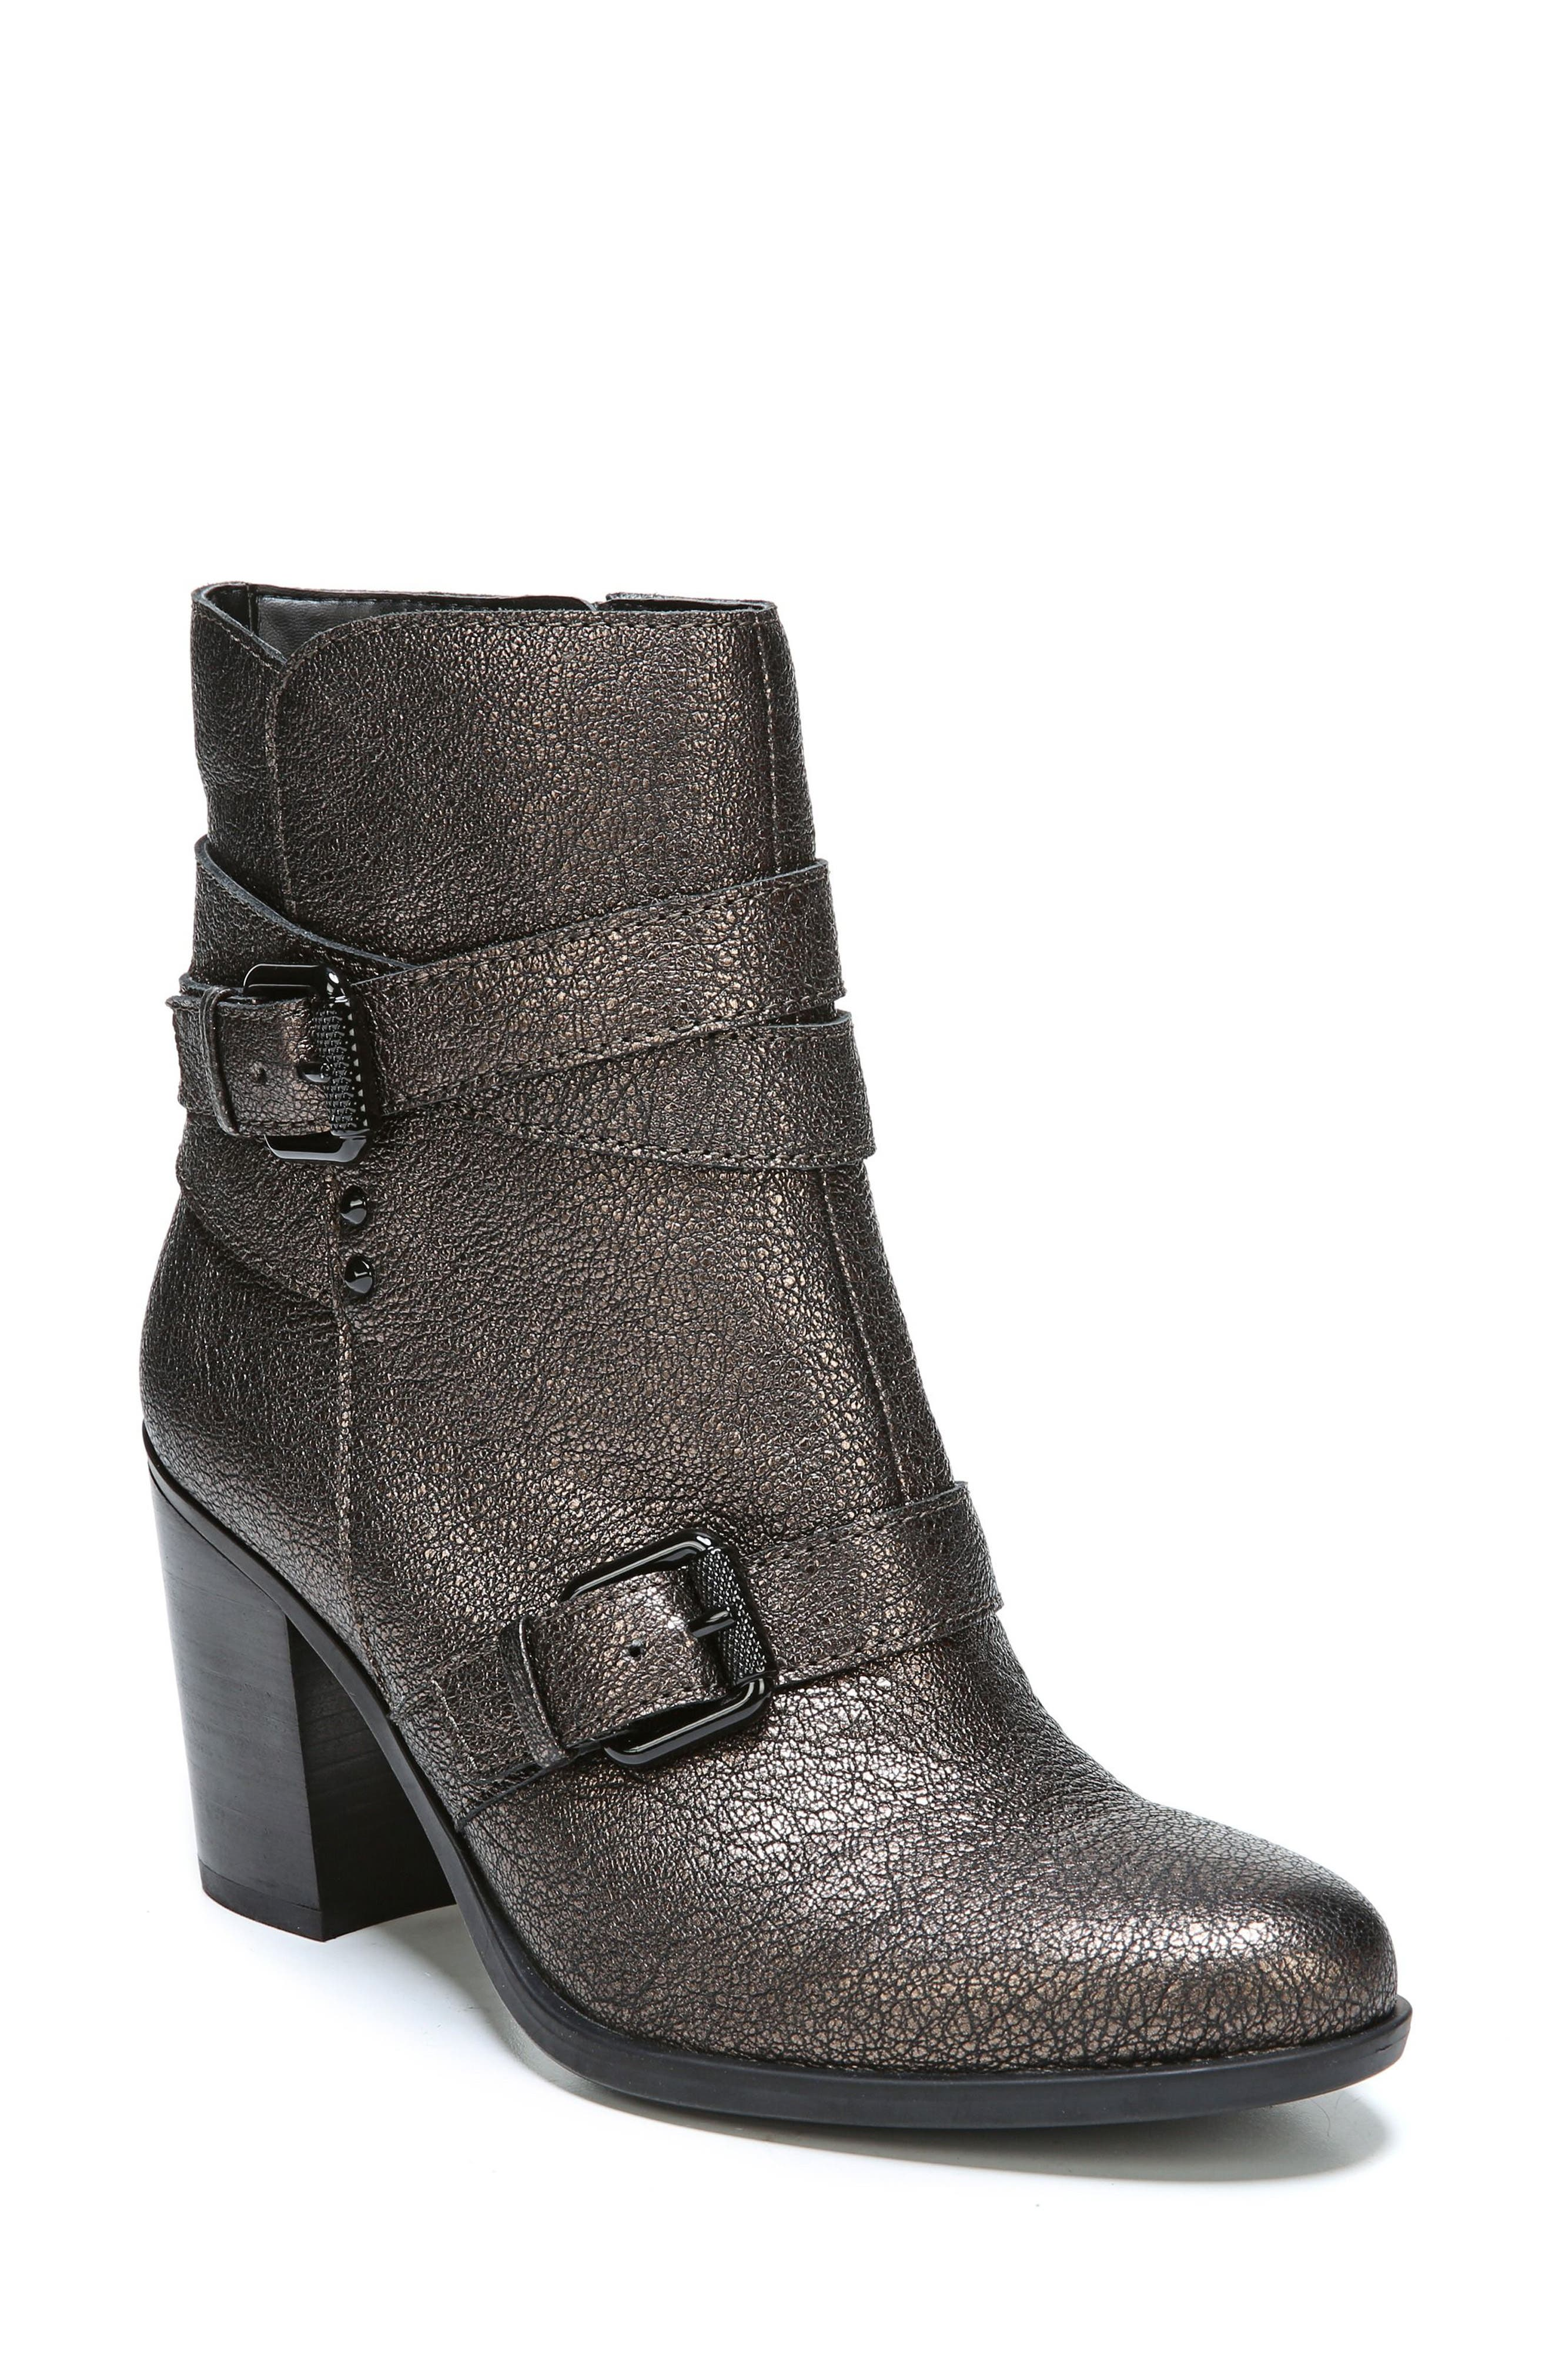 Karlie Buckle Bootie,                             Main thumbnail 1, color,                             Bronze Leather